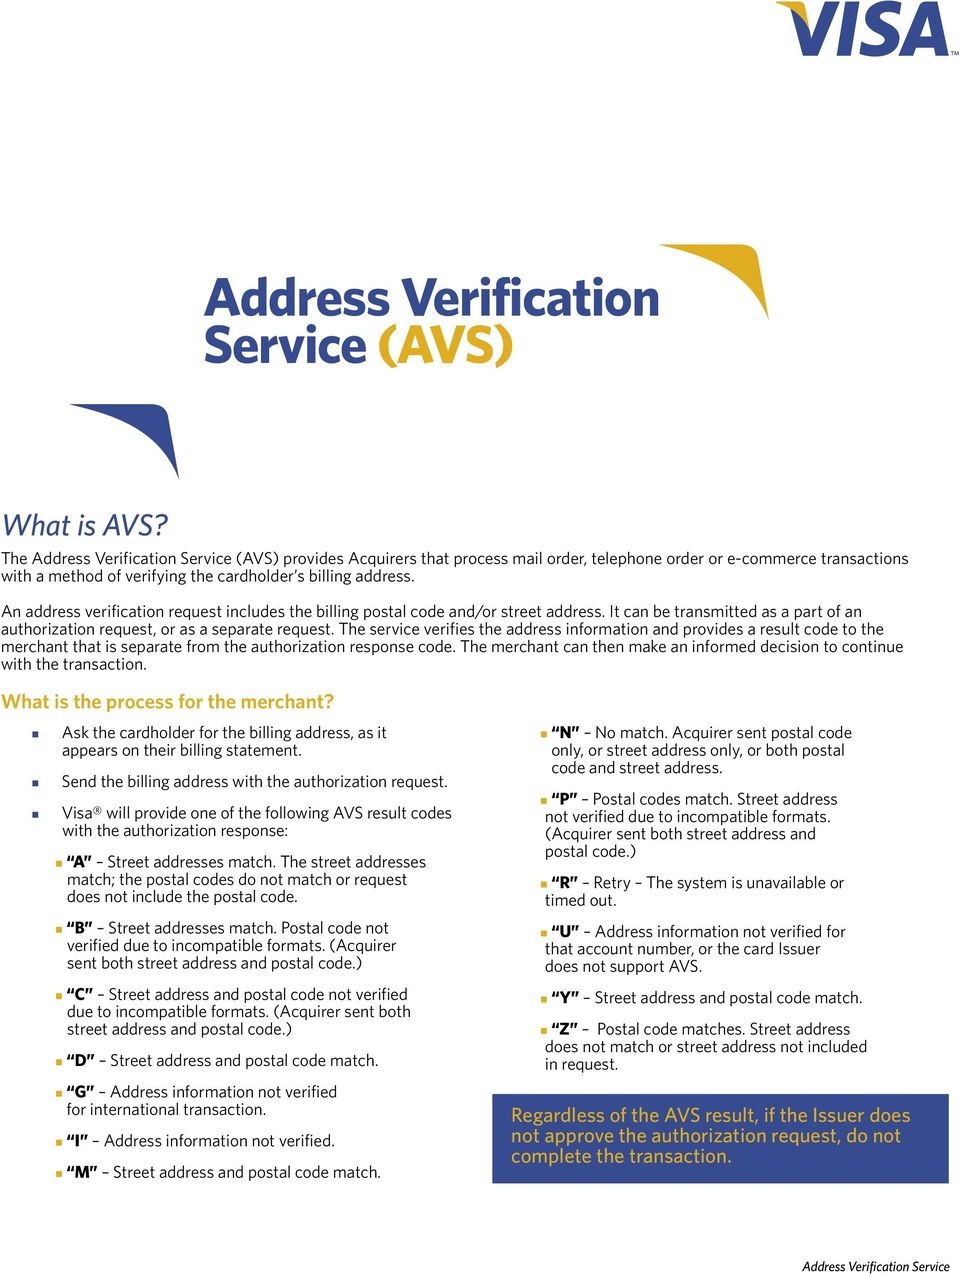 An address verification request includes the billing postal code and/or street address. It can be transmitted as a part of an authorization request, or as a separate request.